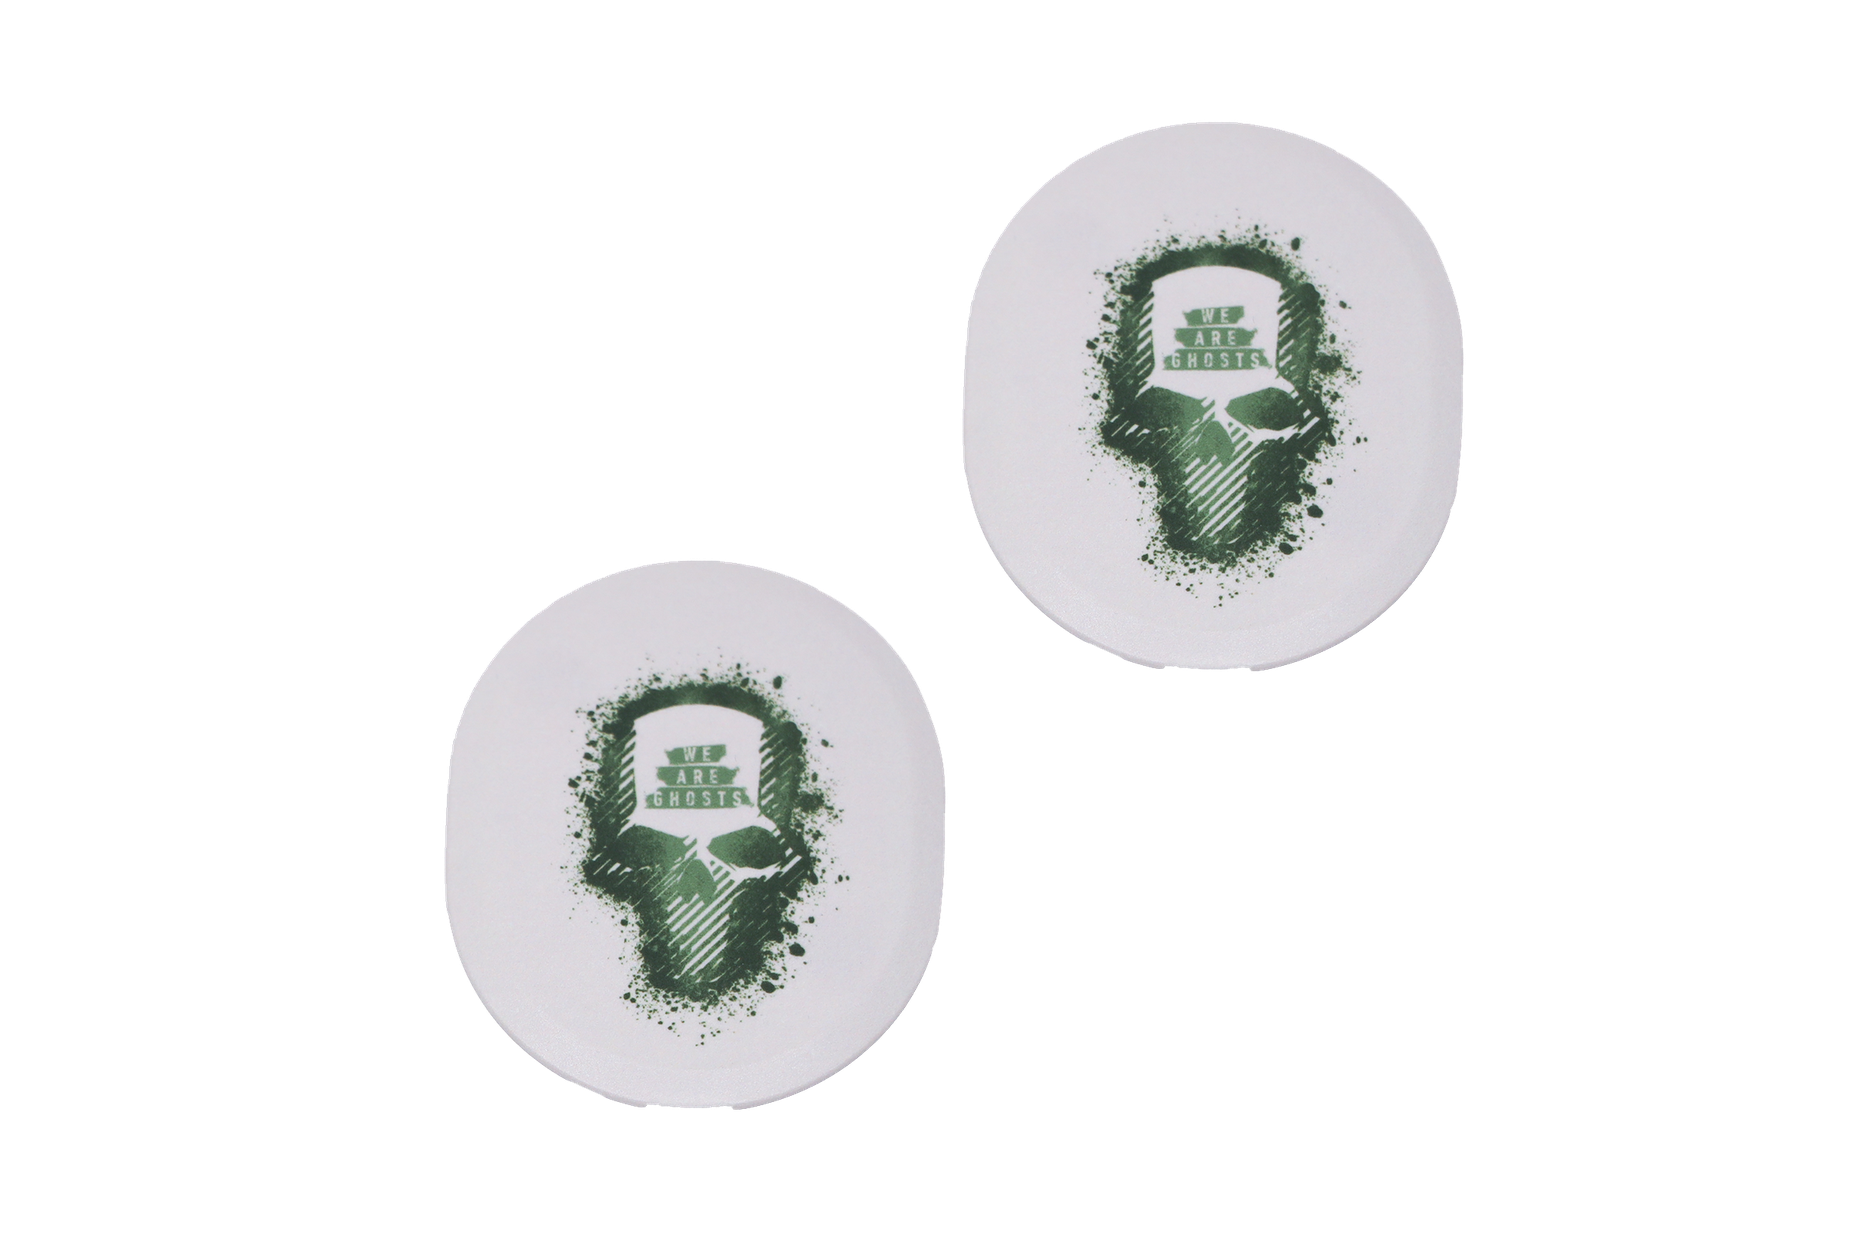 Two Arctis Pro speaker plates designed with the Ghost Recon style